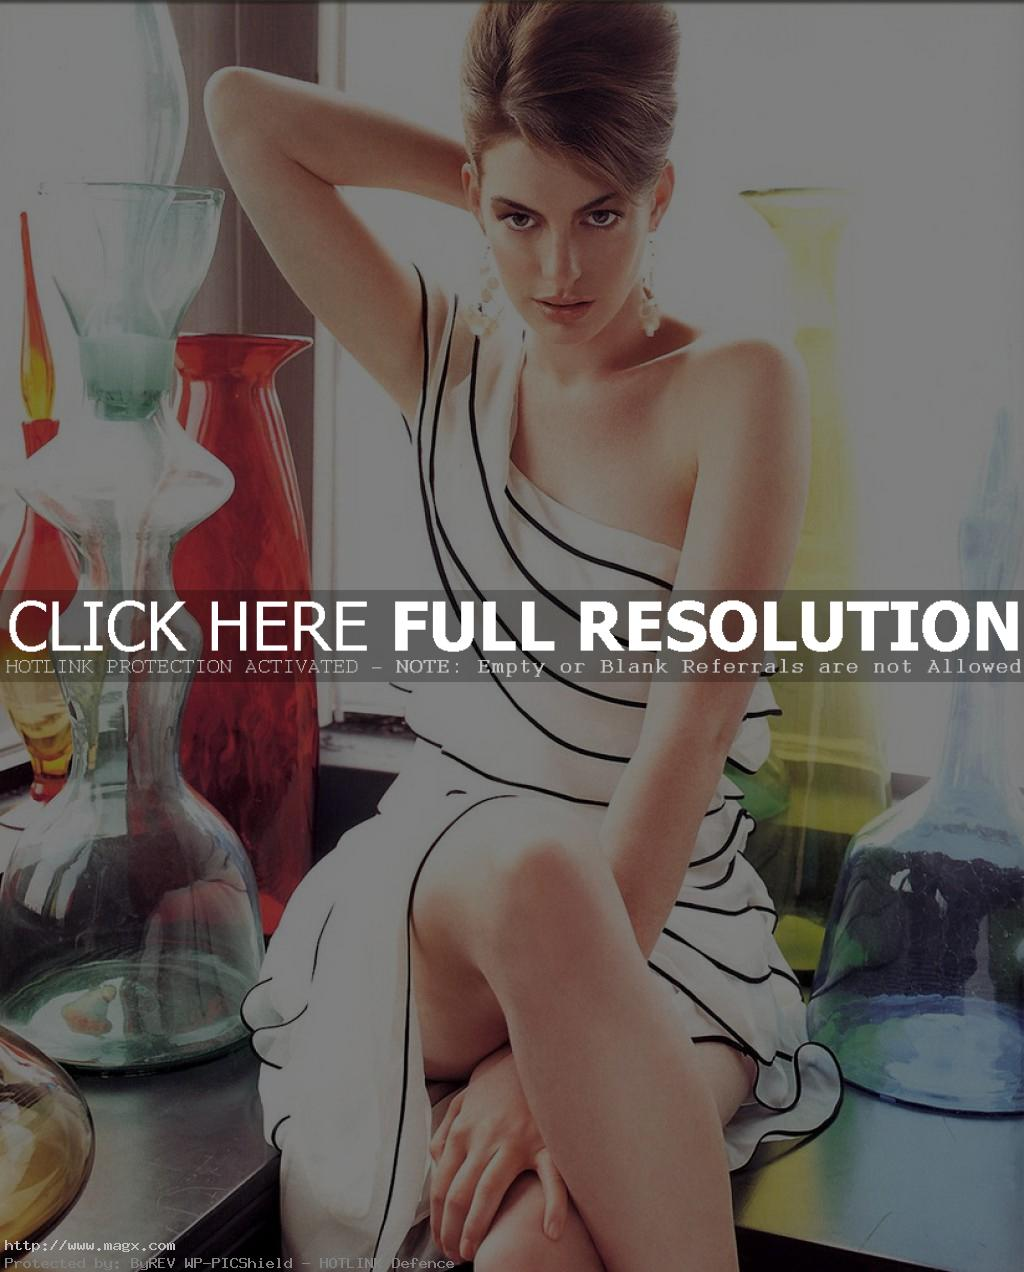 anne hathaway8 Anne Hathaway Biography and Hot Photos